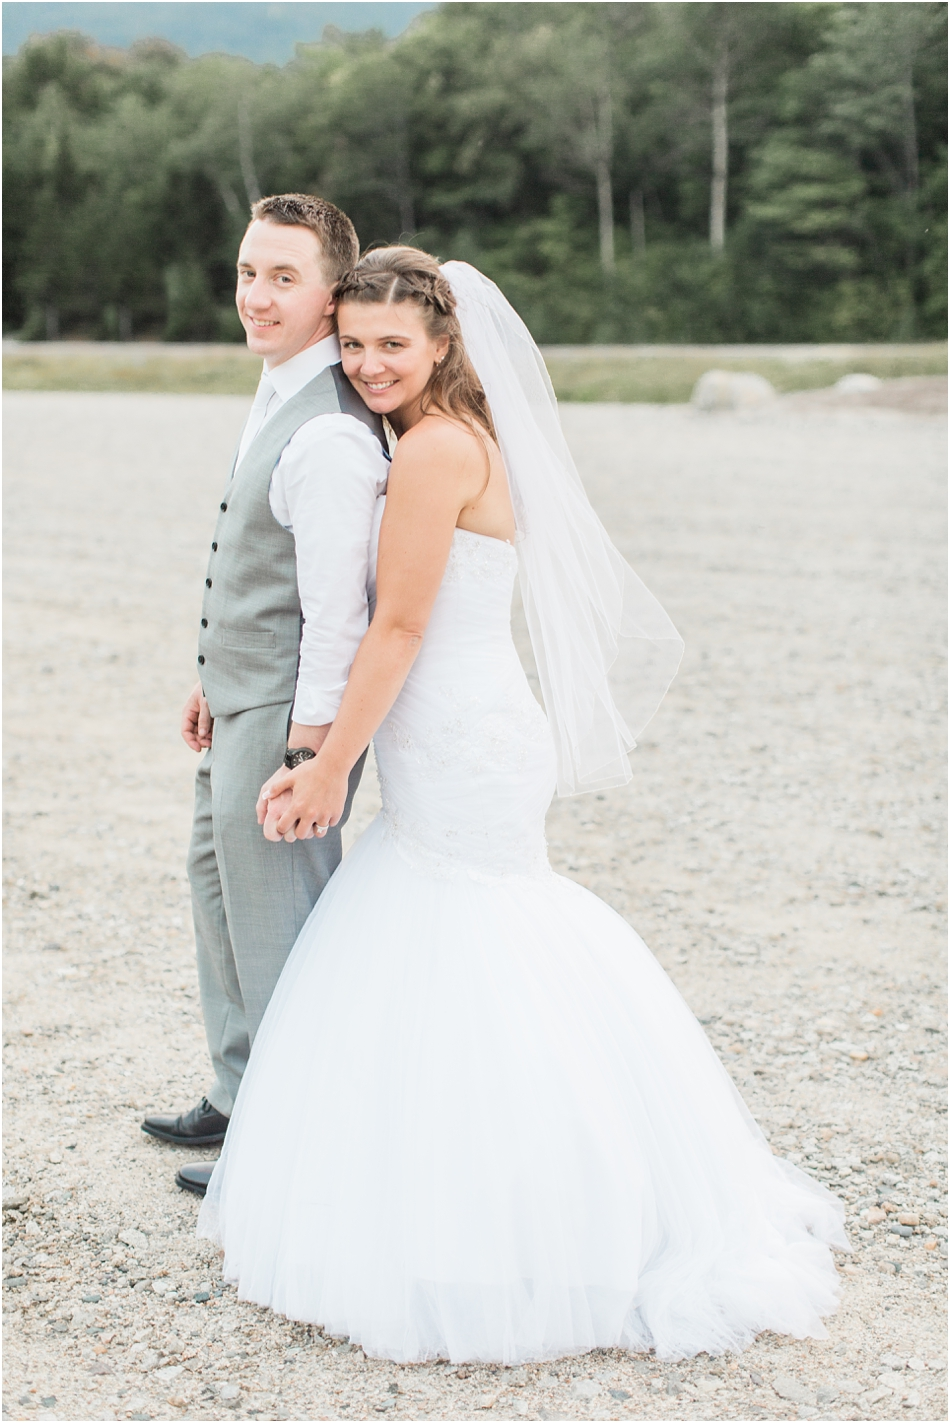 wildcat_mountain_massachusetts_cape_cod_new_england_wedding_photographer_Meredith_Jane_Photography_photo_2184.jpg